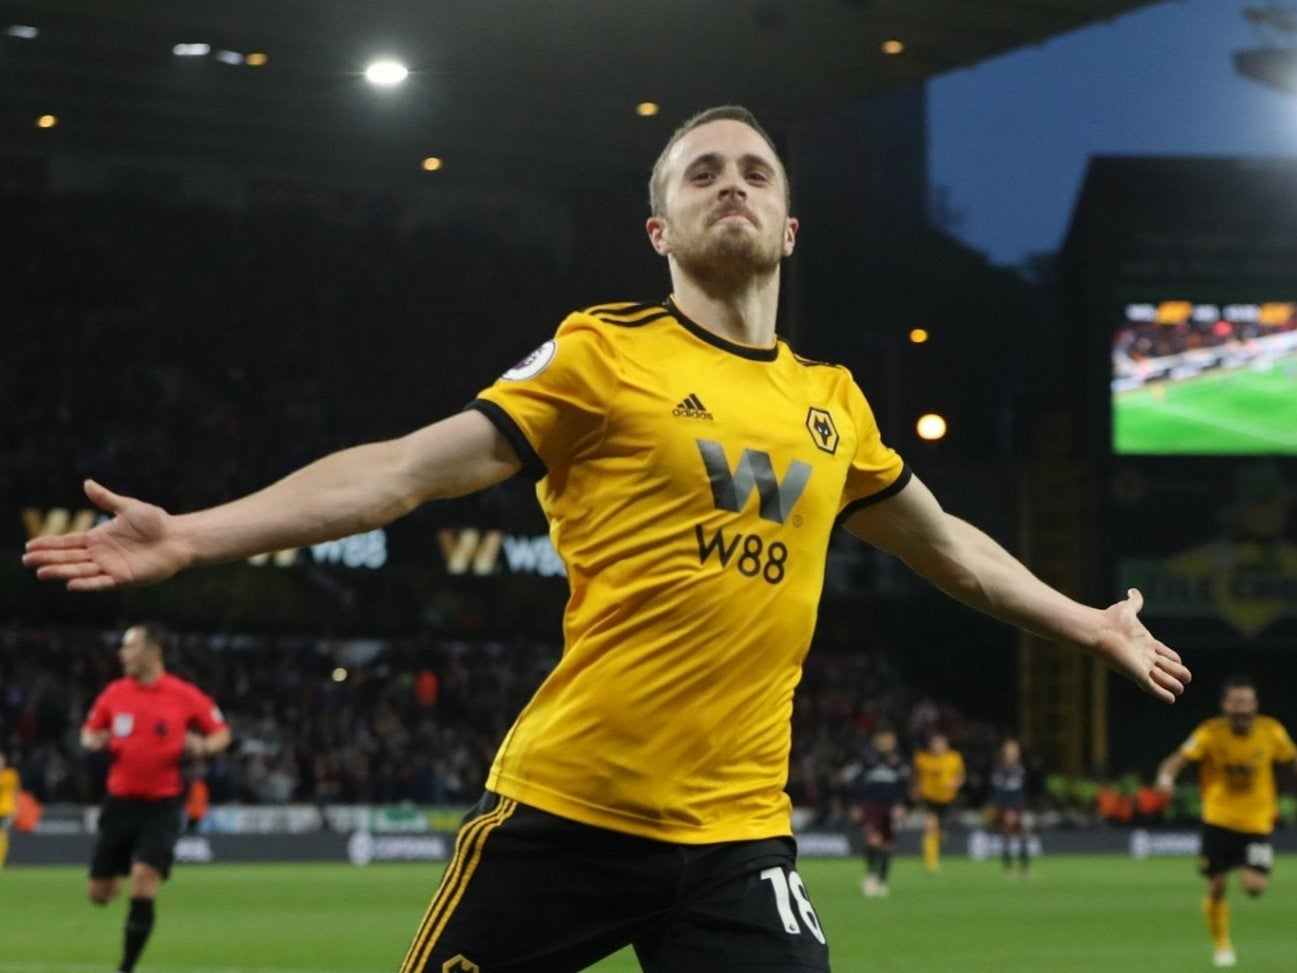 Liverpool transfer news: Diogo Jota to join from Wolves for £41m on a  five-year deal | The Independent